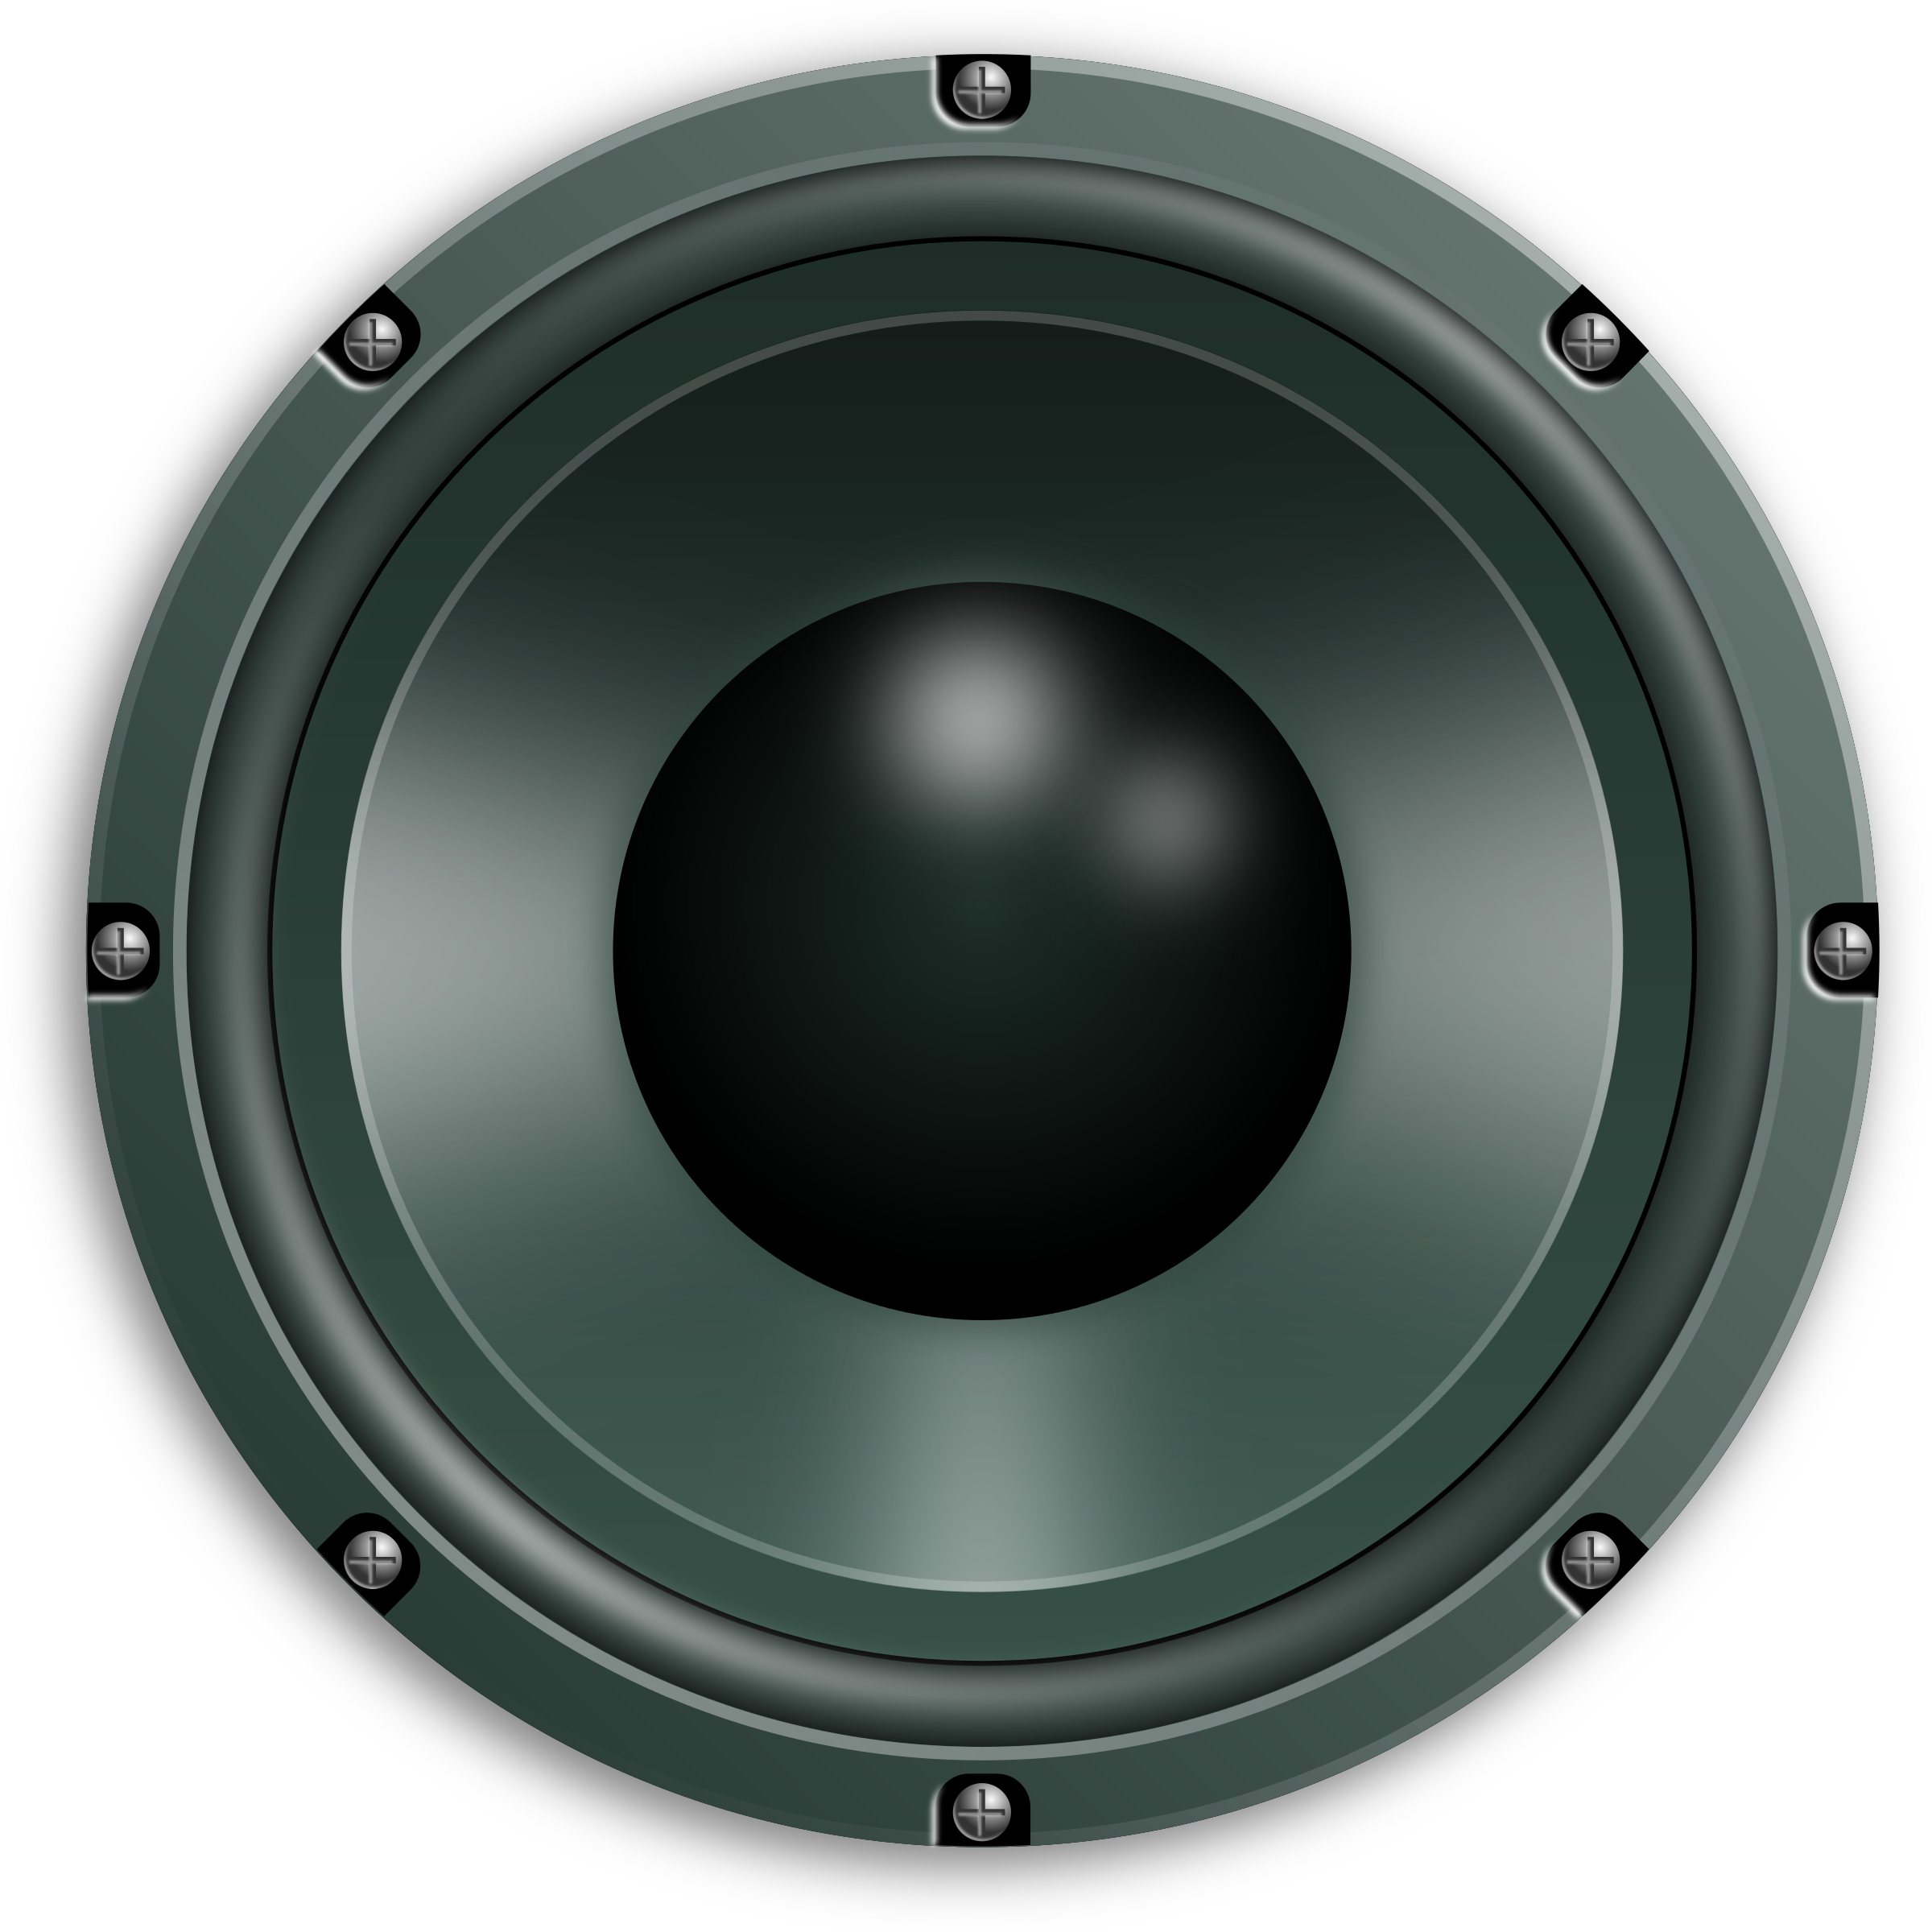 Speakers clipart circle. Audio png free download